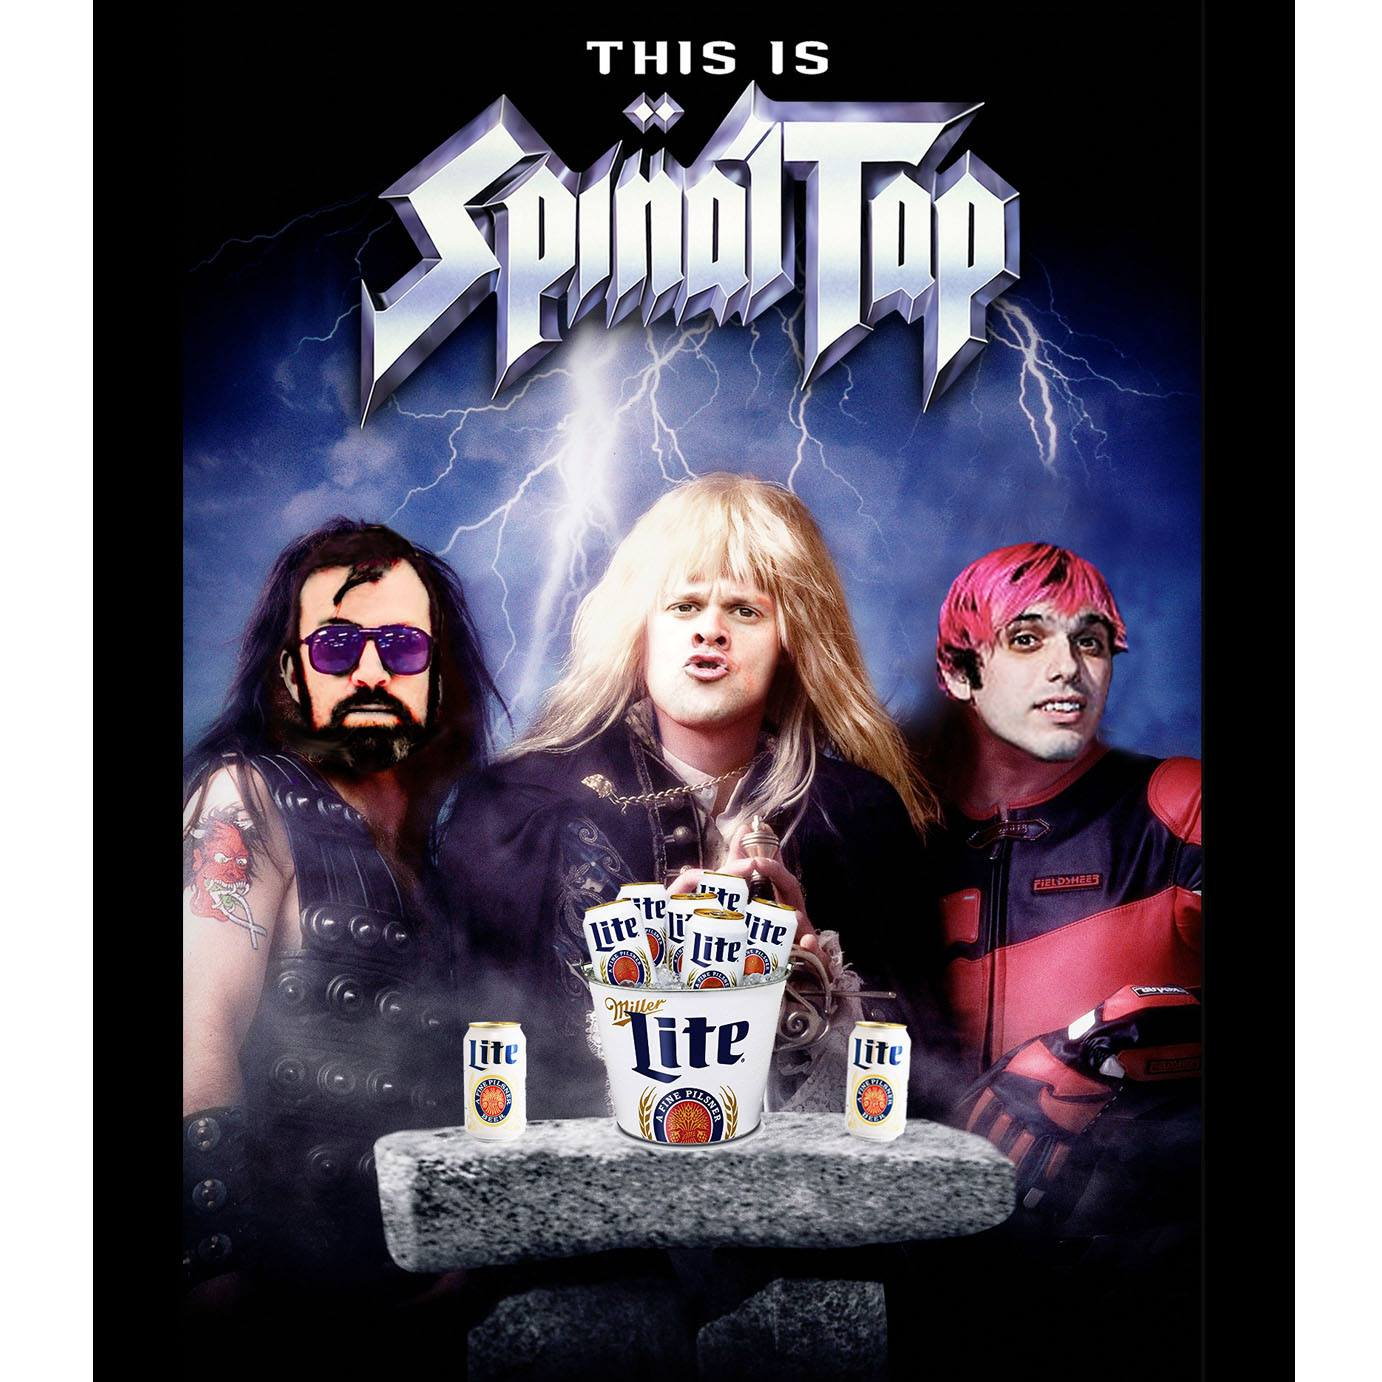 Ep.159 - This Is Spinal Tap